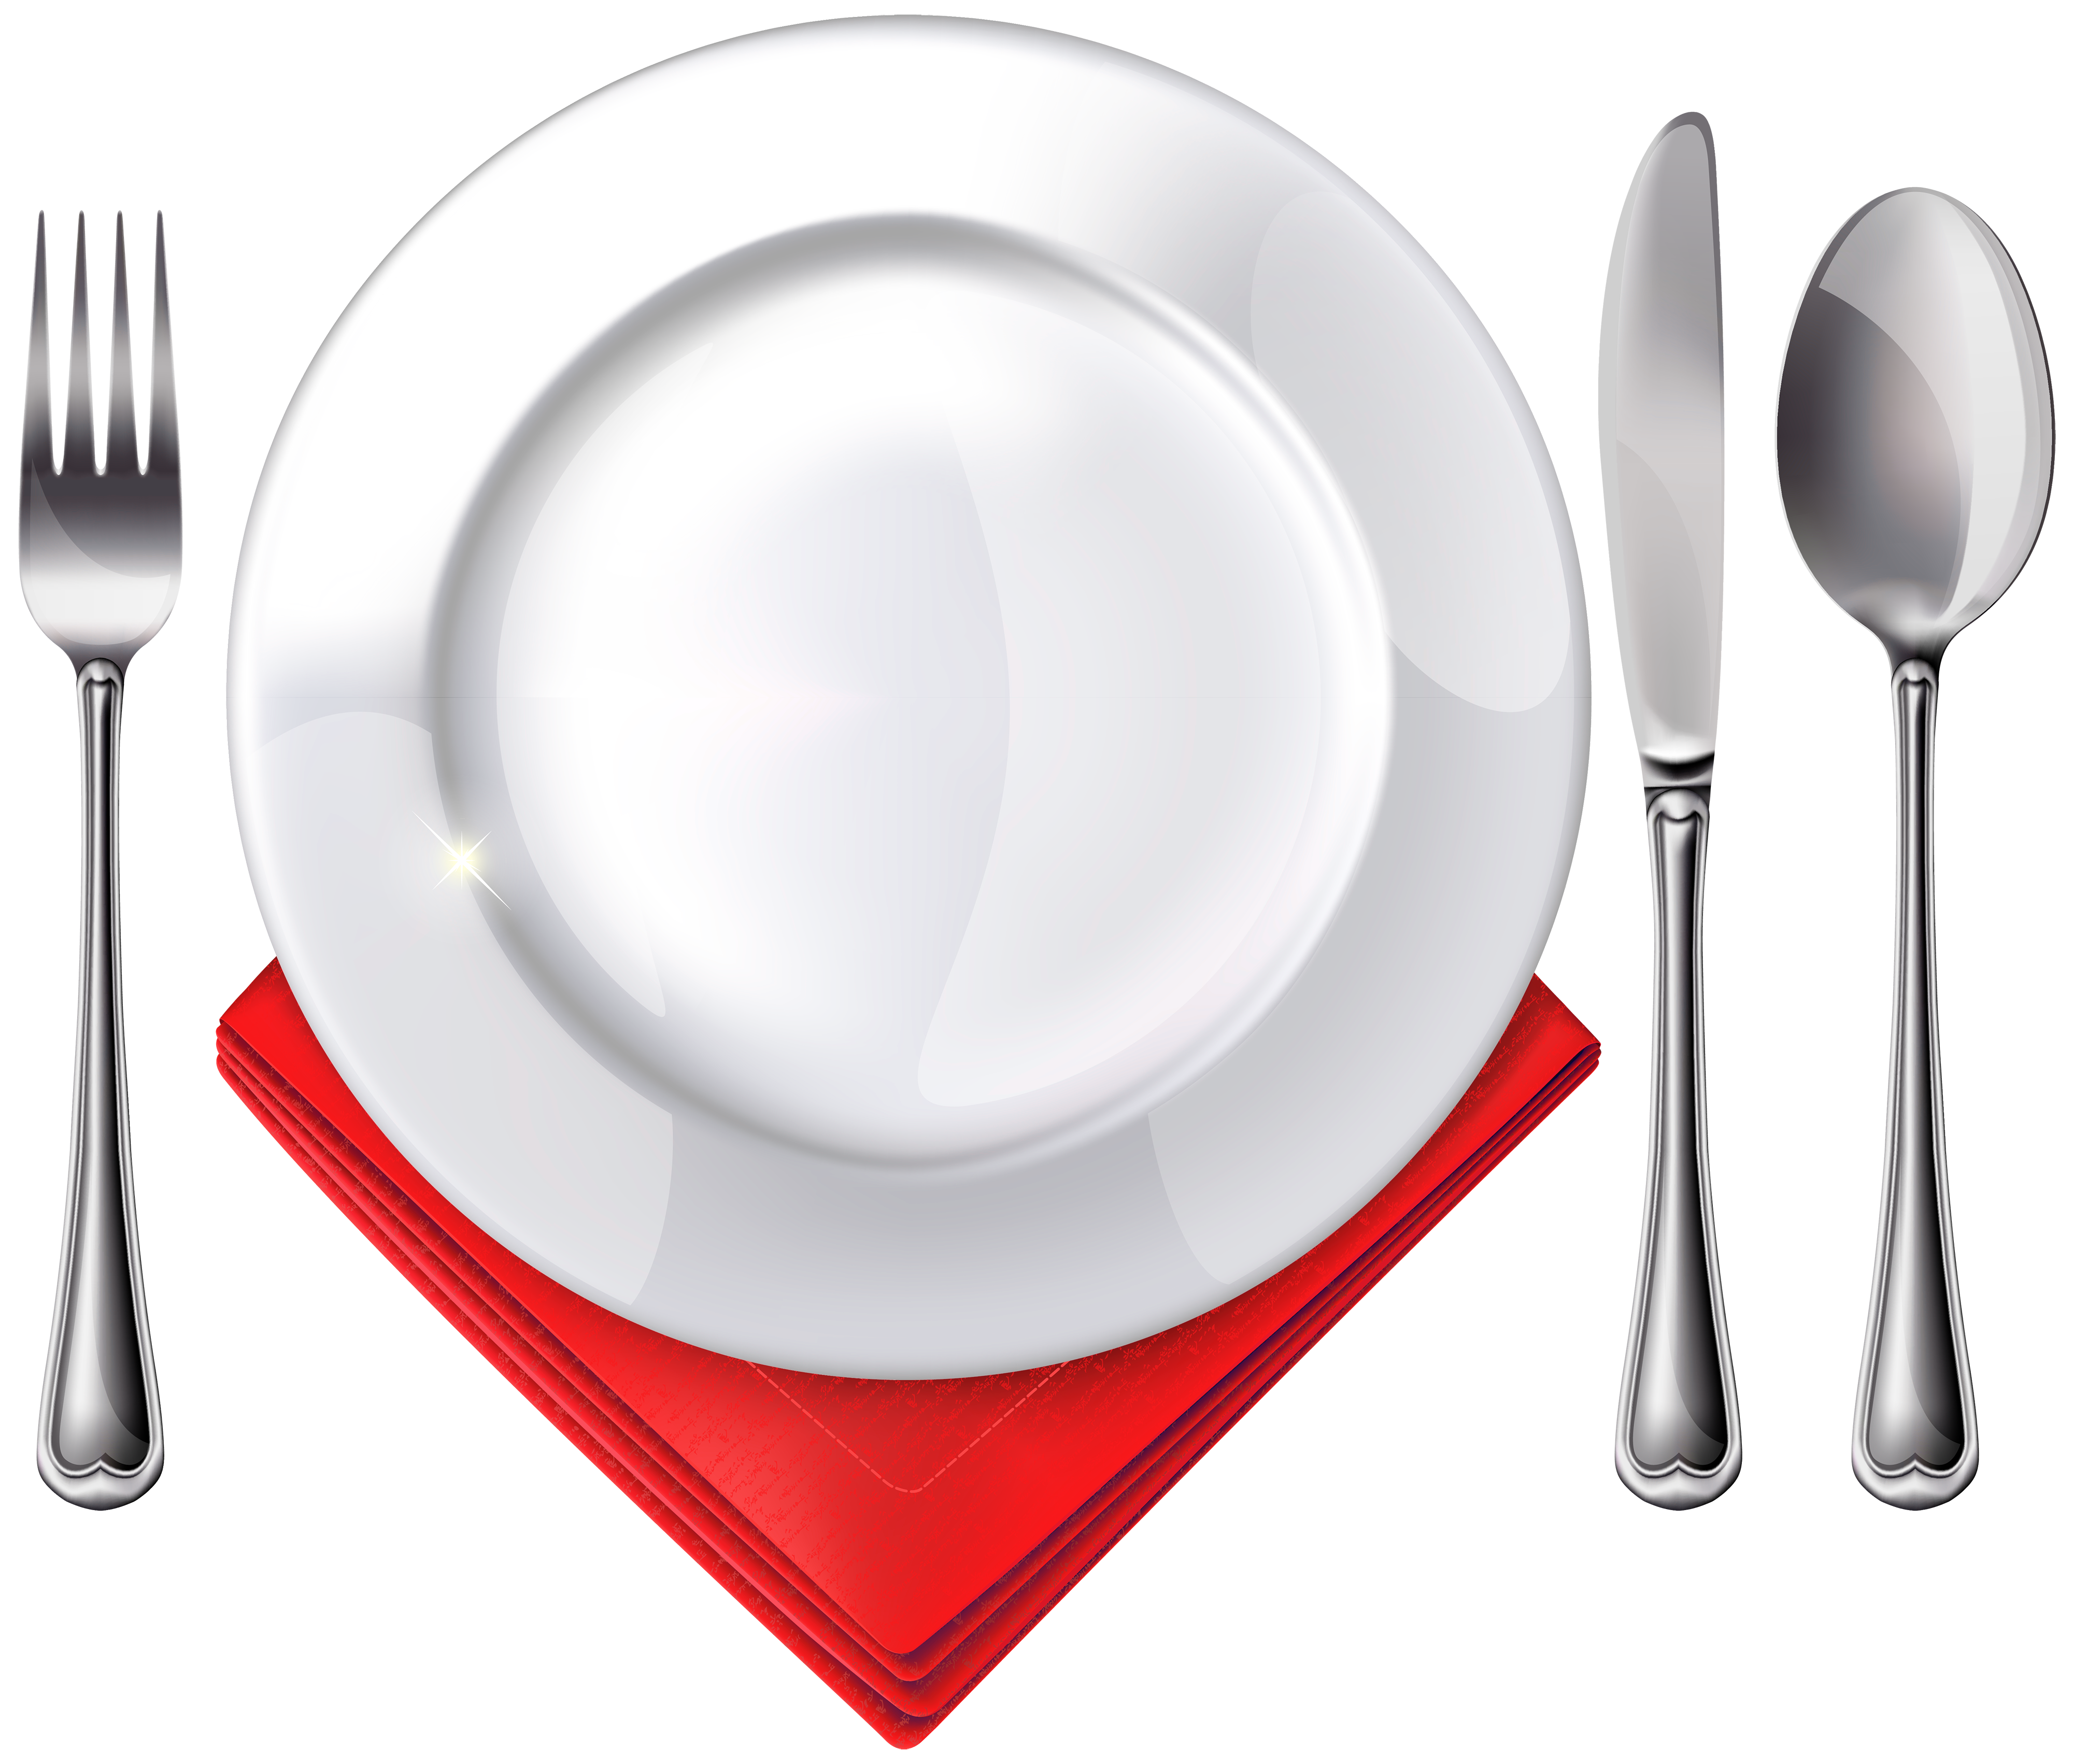 Plate Spoon Knife Fork and Red Napkin PNG Clipart.